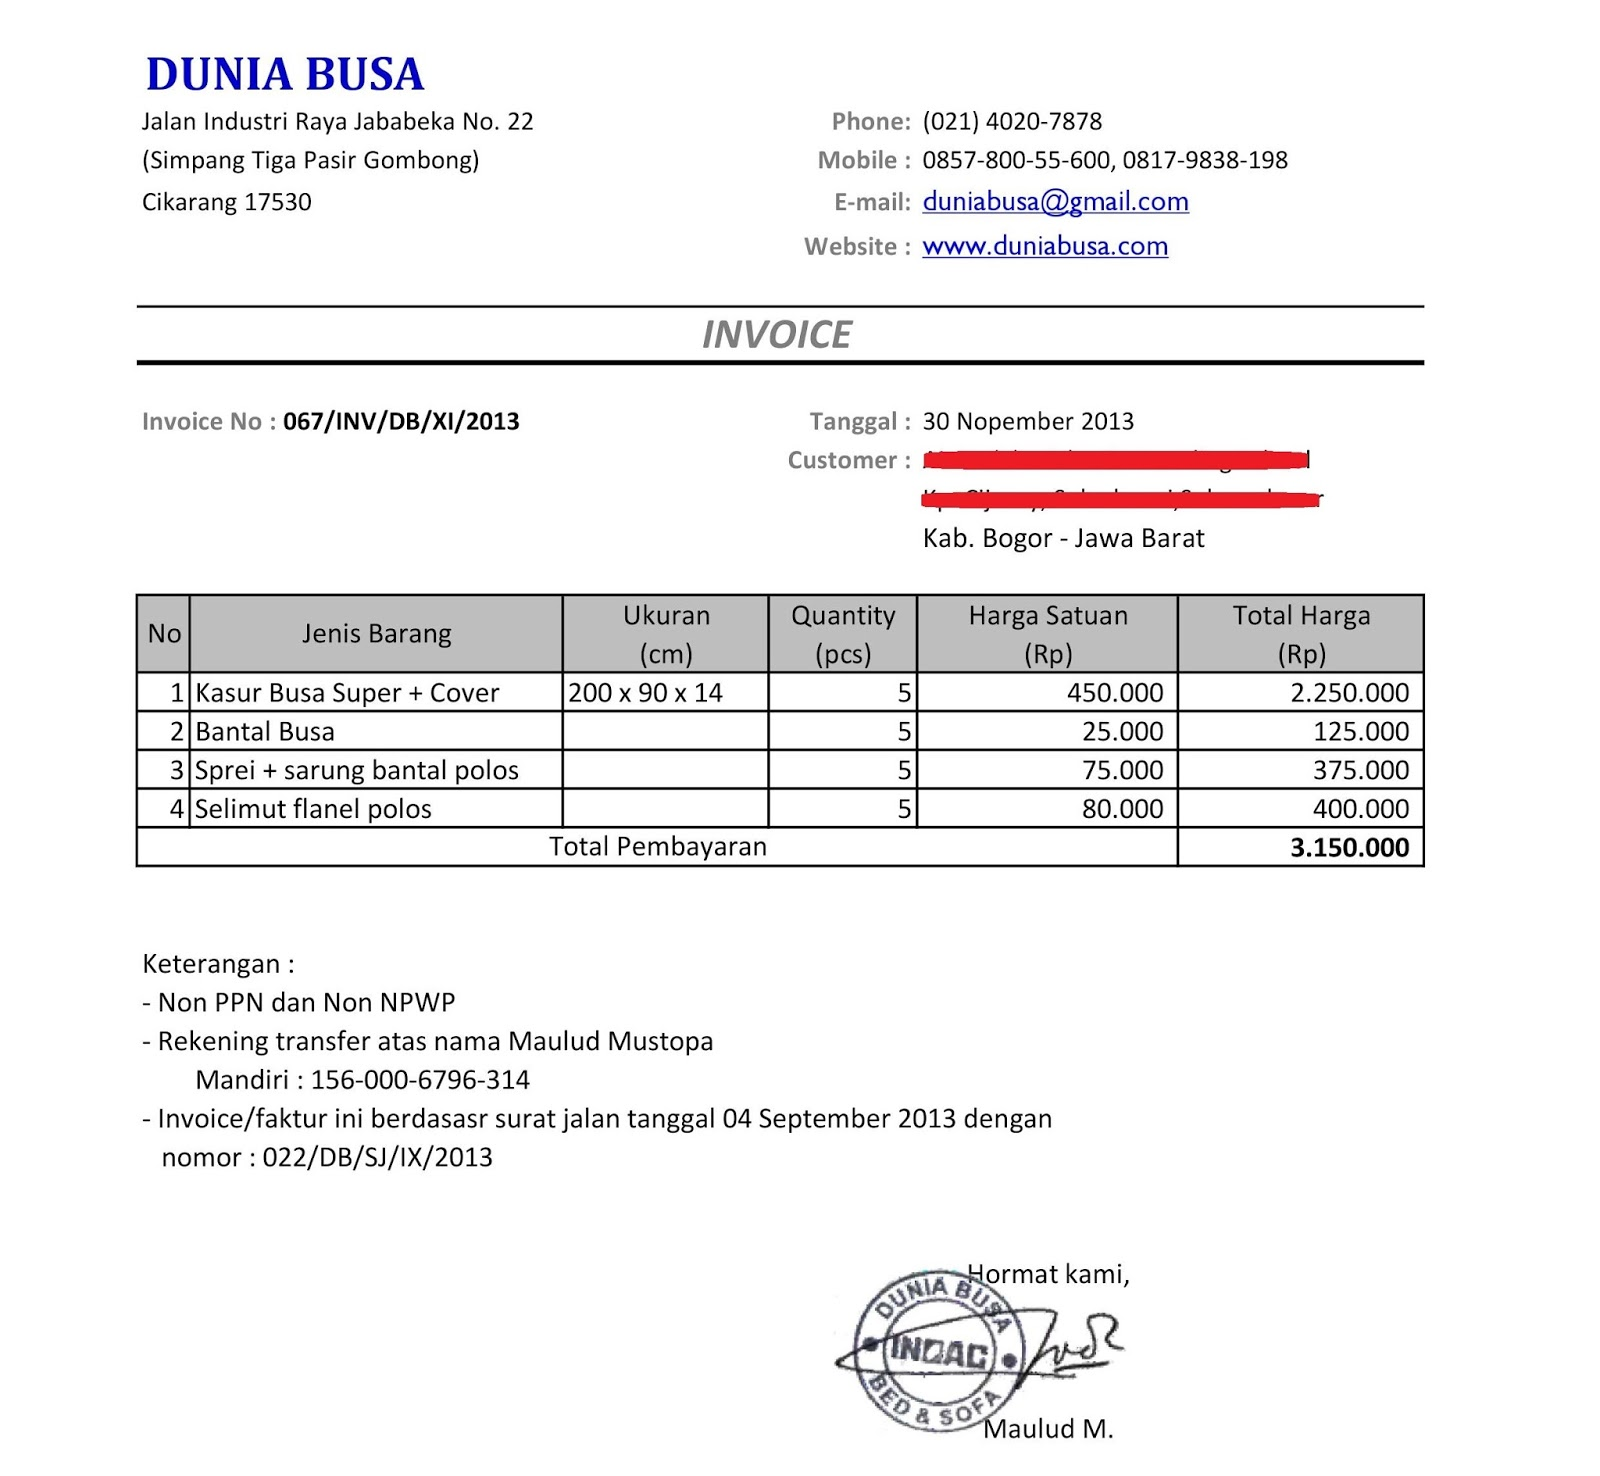 Darkfaderus  Inspiring Free Invoice Online  Create Invoice Online  Invoice Template  With Lovely Contoh Format Invoice Atau Surat Tagihan  Brankas Arsip  Free Invoice Online With Comely Template Invoice Also New Car Invoice Prices In Addition Estimates And Invoices And Quickbooks Invoice As Well As Business Invoice Template Additionally Invoice Central From Sklepco With Darkfaderus  Lovely Free Invoice Online  Create Invoice Online  Invoice Template  With Comely Contoh Format Invoice Atau Surat Tagihan  Brankas Arsip  Free Invoice Online And Inspiring Template Invoice Also New Car Invoice Prices In Addition Estimates And Invoices From Sklepco